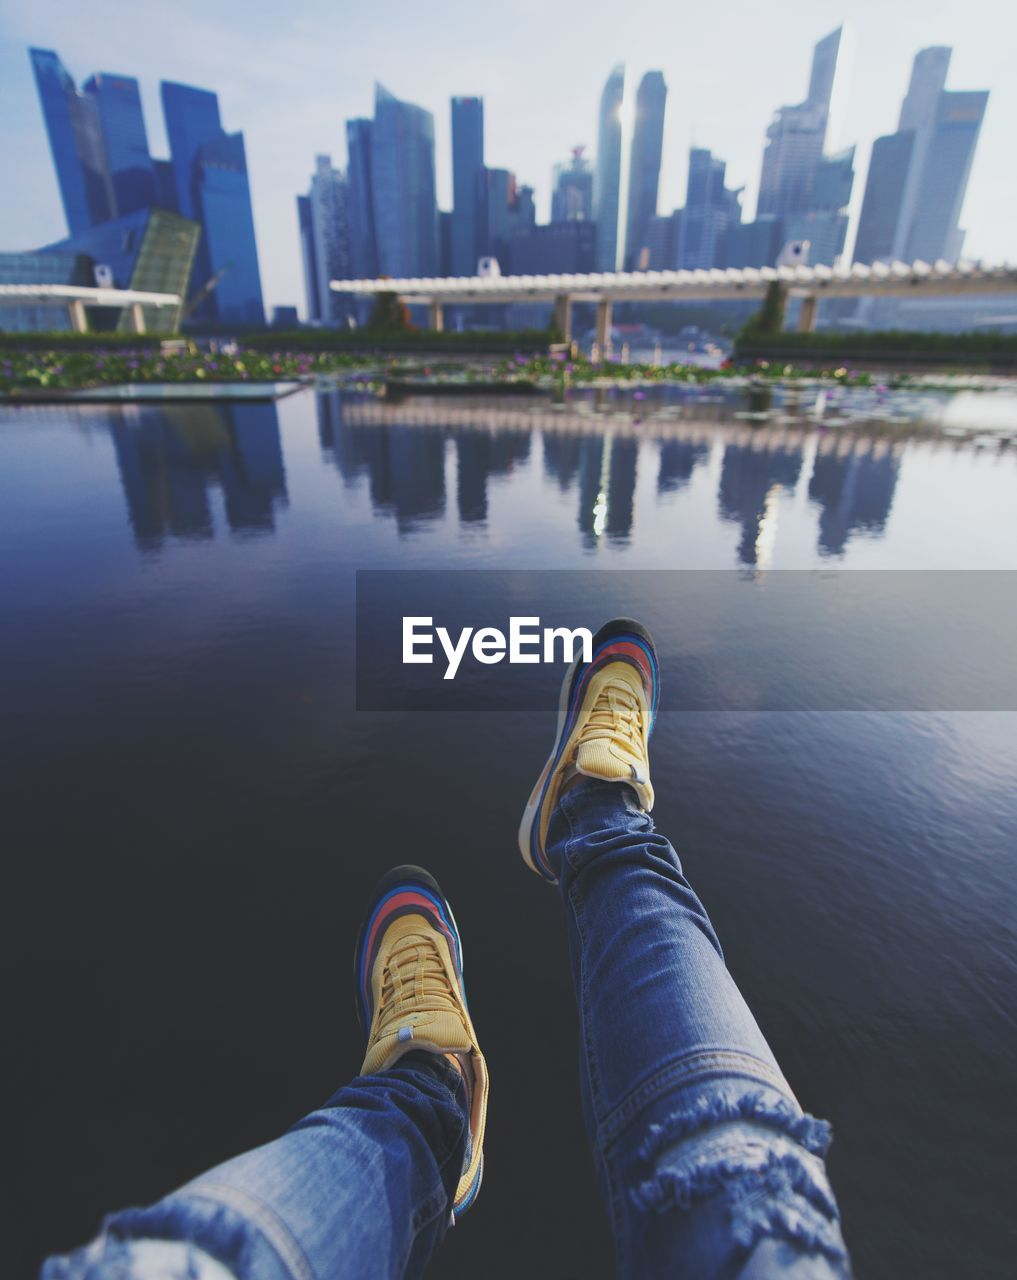 water, low section, built structure, architecture, human leg, building exterior, personal perspective, shoe, nature, human body part, city, day, body part, real people, reflection, one person, outdoors, lake, leisure activity, office building exterior, jeans, human foot, skyscraper, human limb